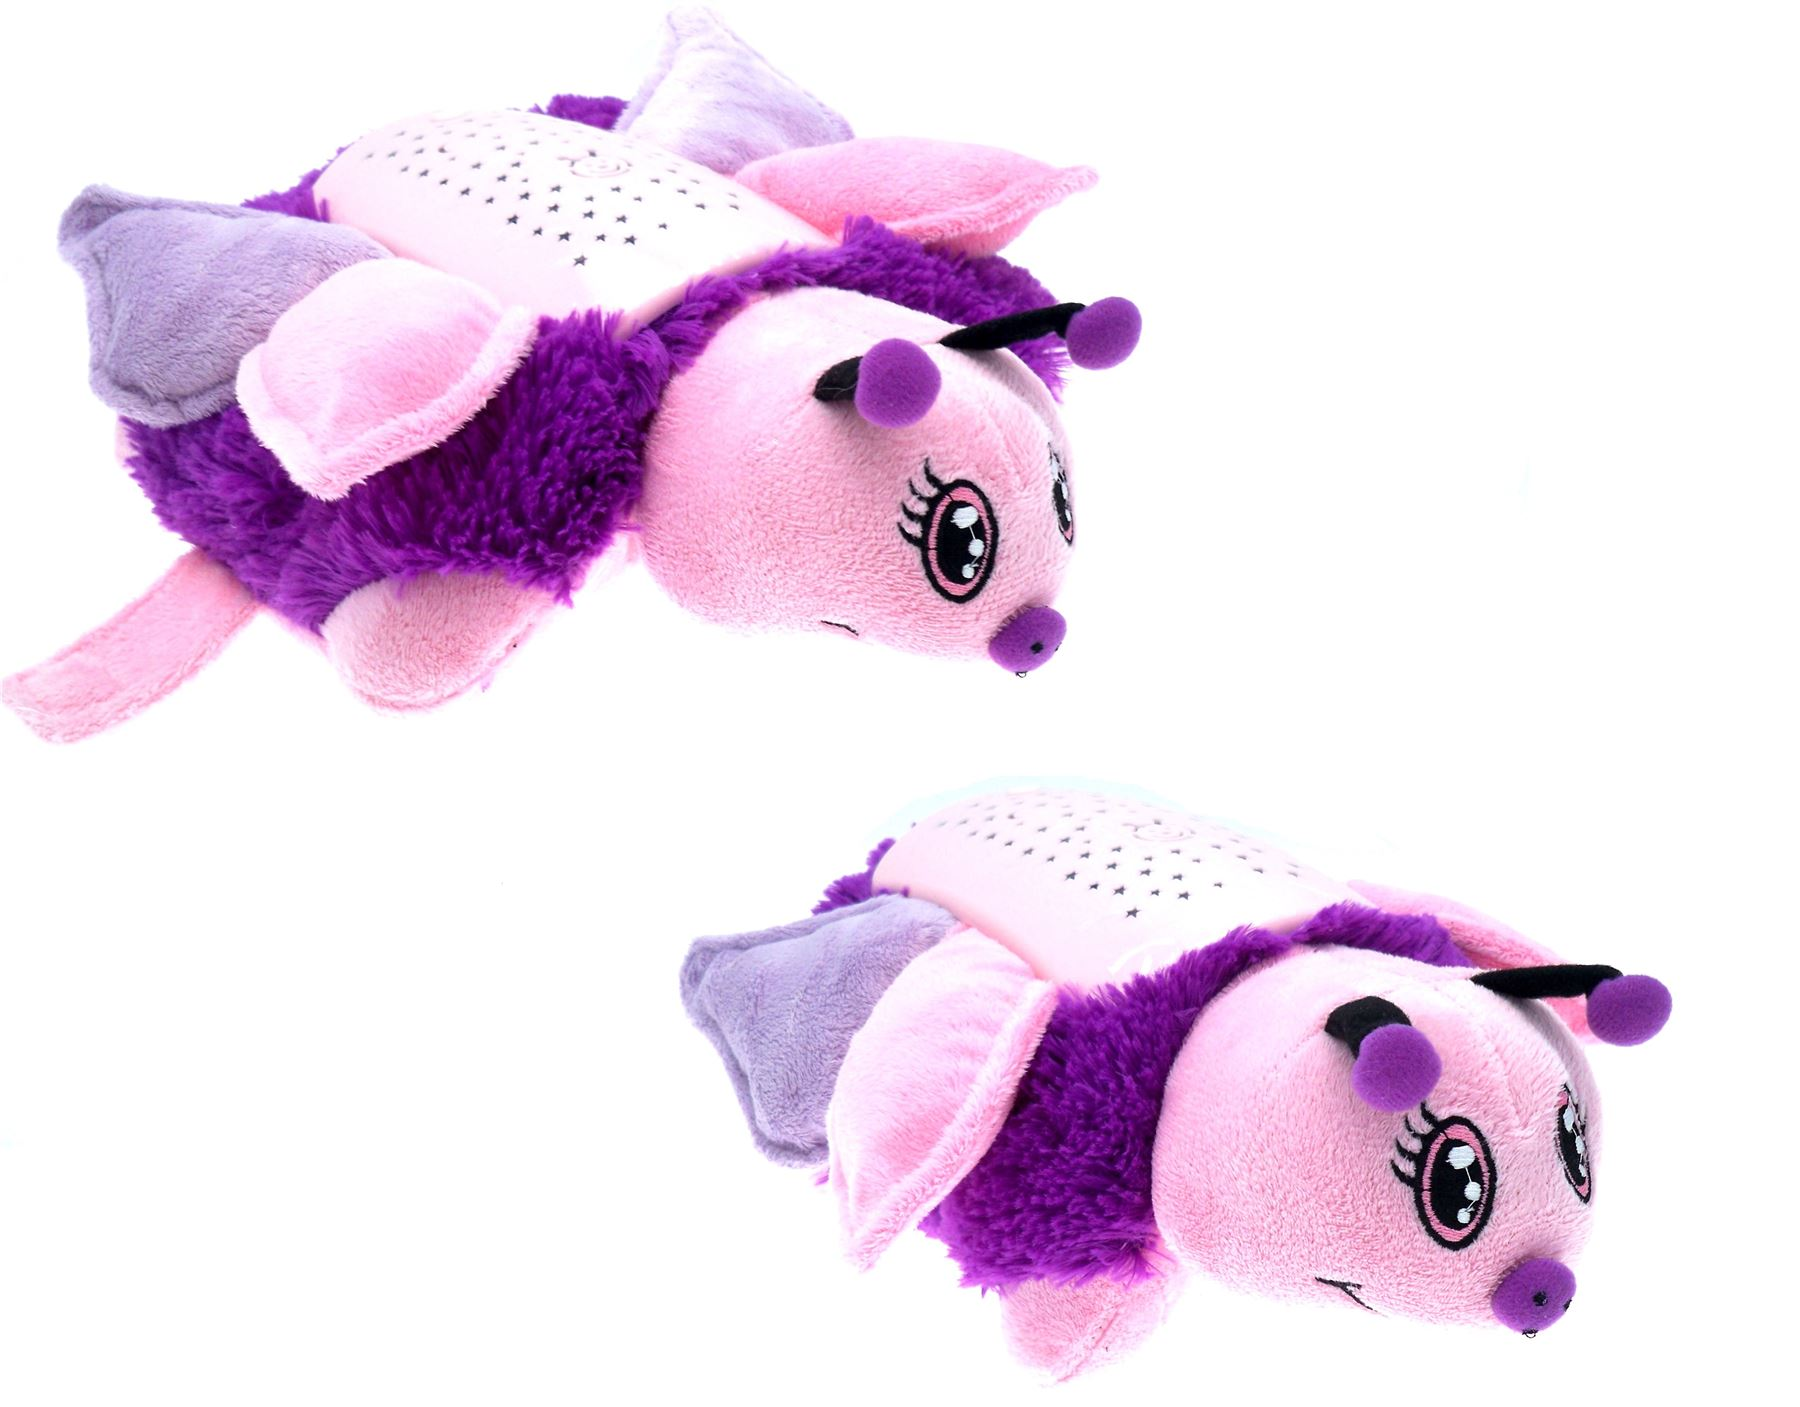 Bright Light Animal Pillow Pets : ANIMAL PILLOW PETS DREAM WITH NIGHT LIGHT KIDS TOY LITES PLUSH CUDDLY CUSHION eBay